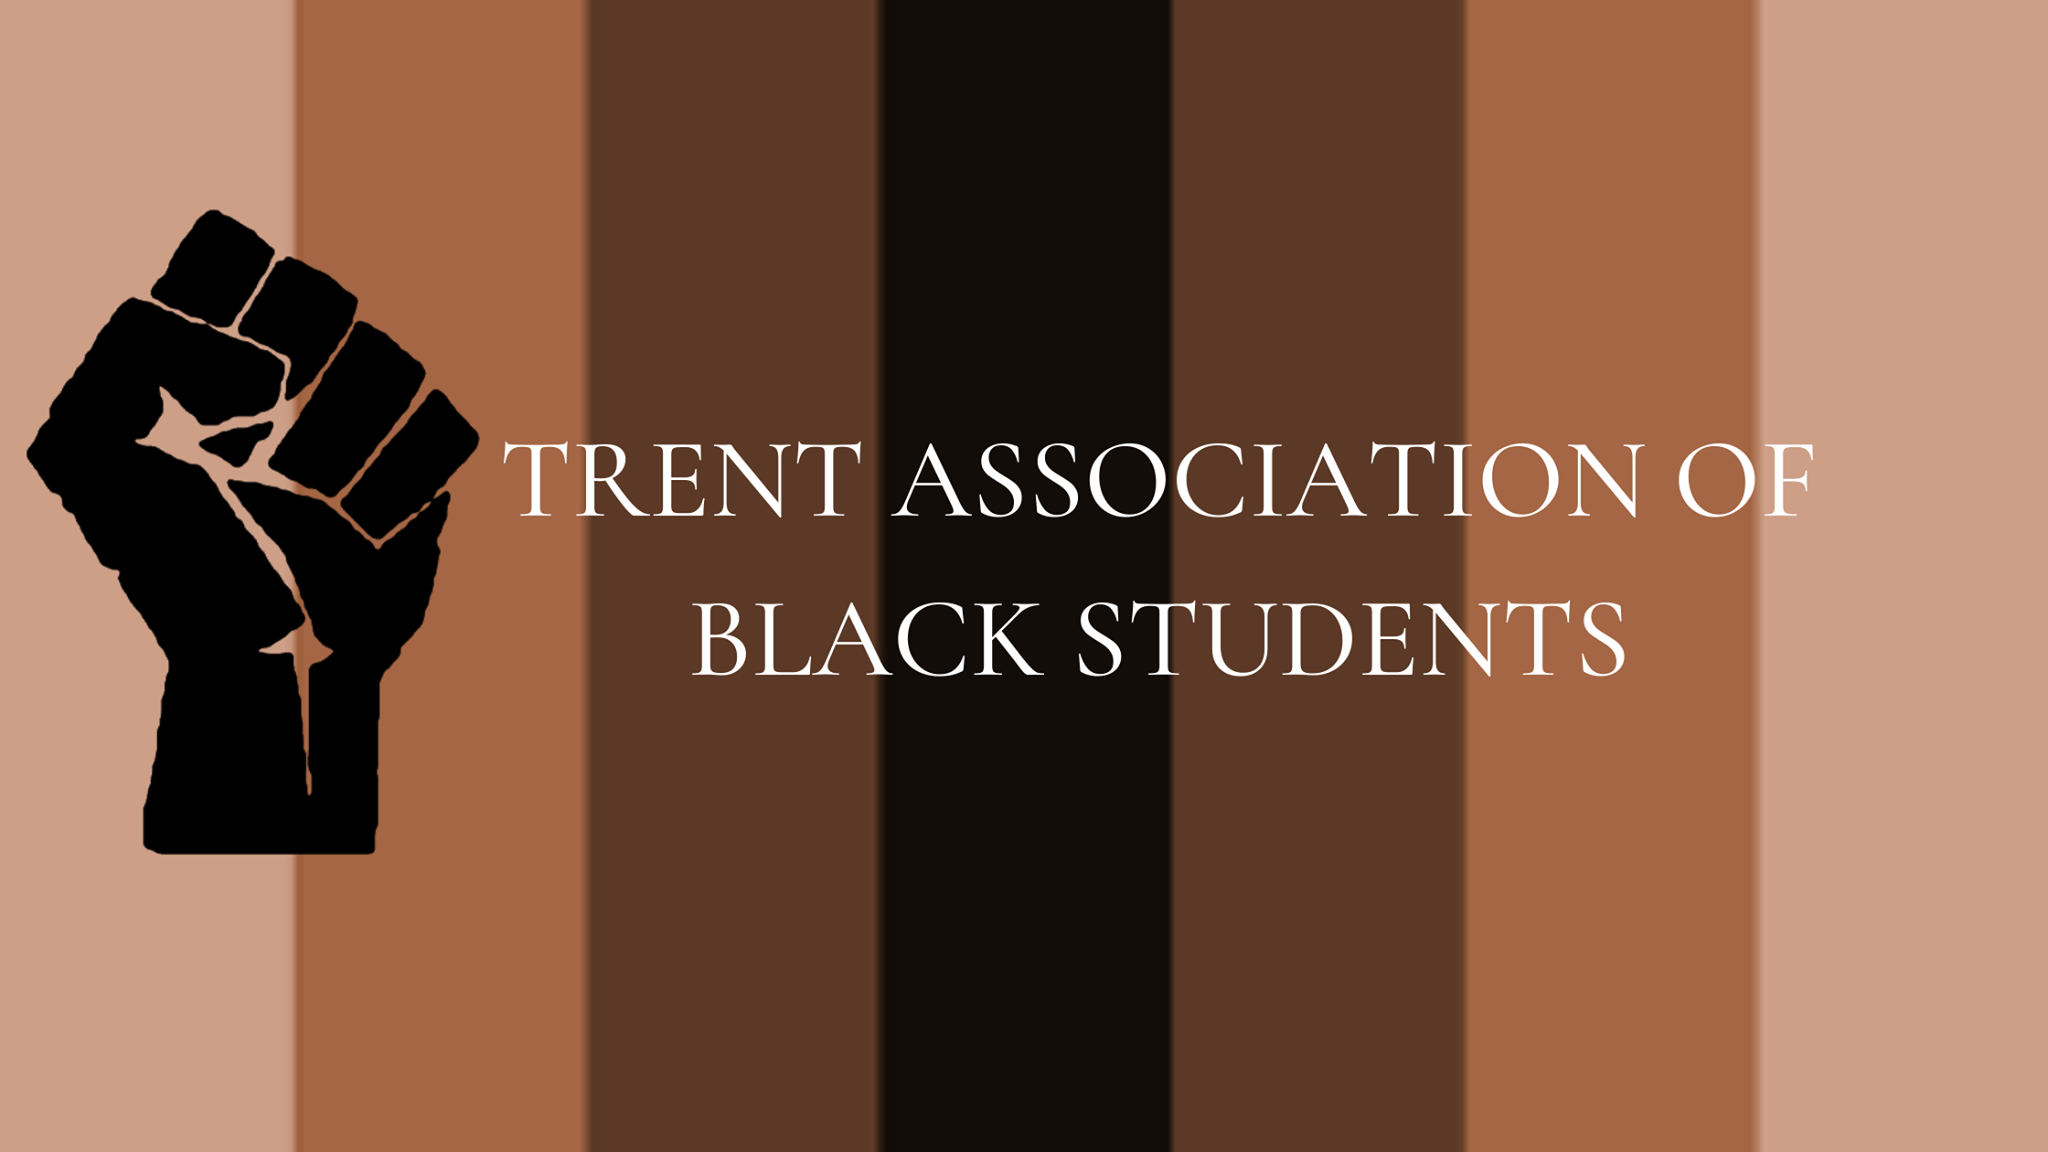 Open Letter to Trent Security re: Racism on Campus